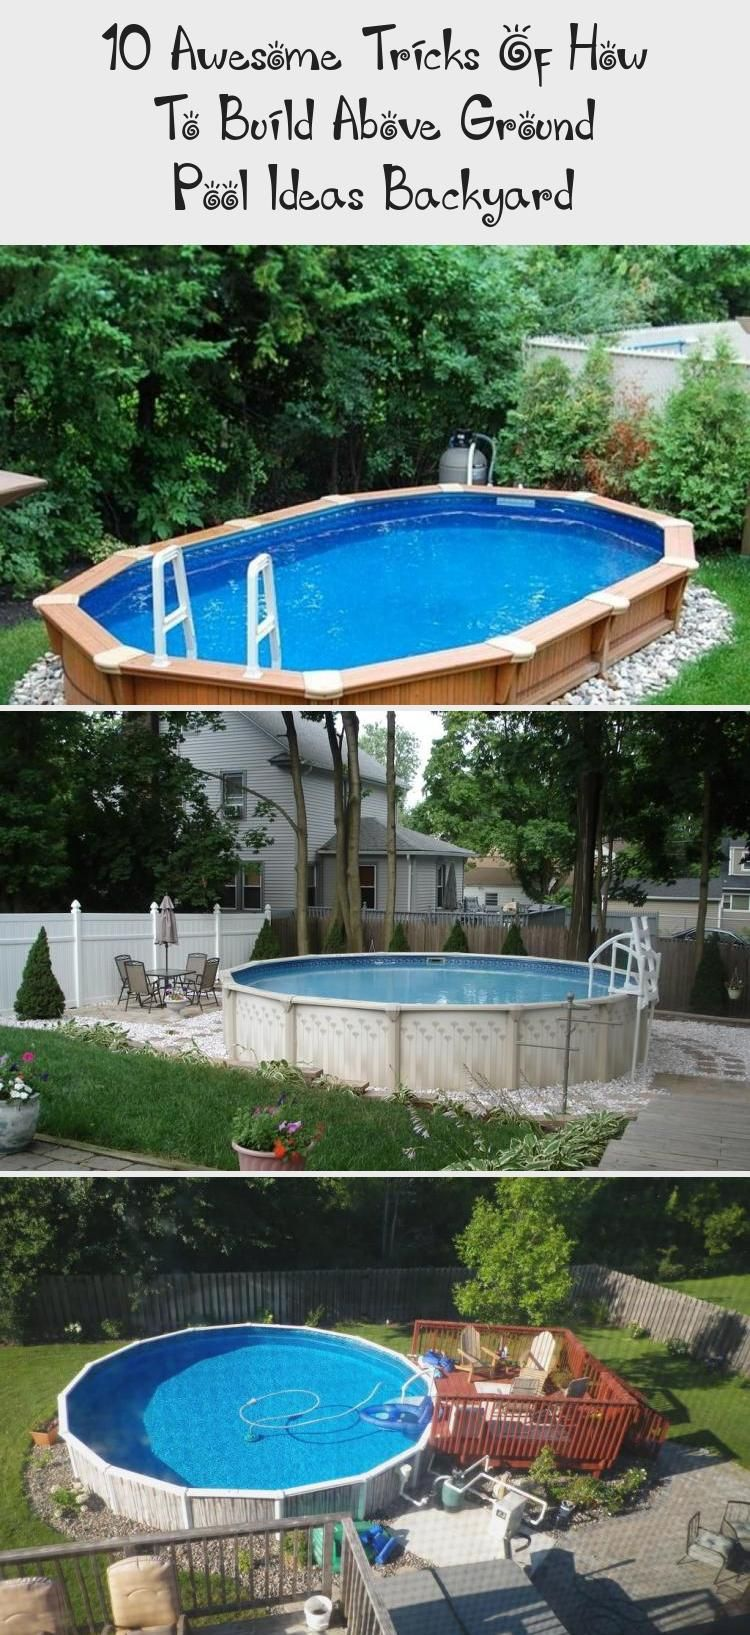 10 Awesome Tricks Of How To Build Above Ground Pool Ideas Backyard Backyard Pool Above Ground Pool Landscaping In Ground Pools